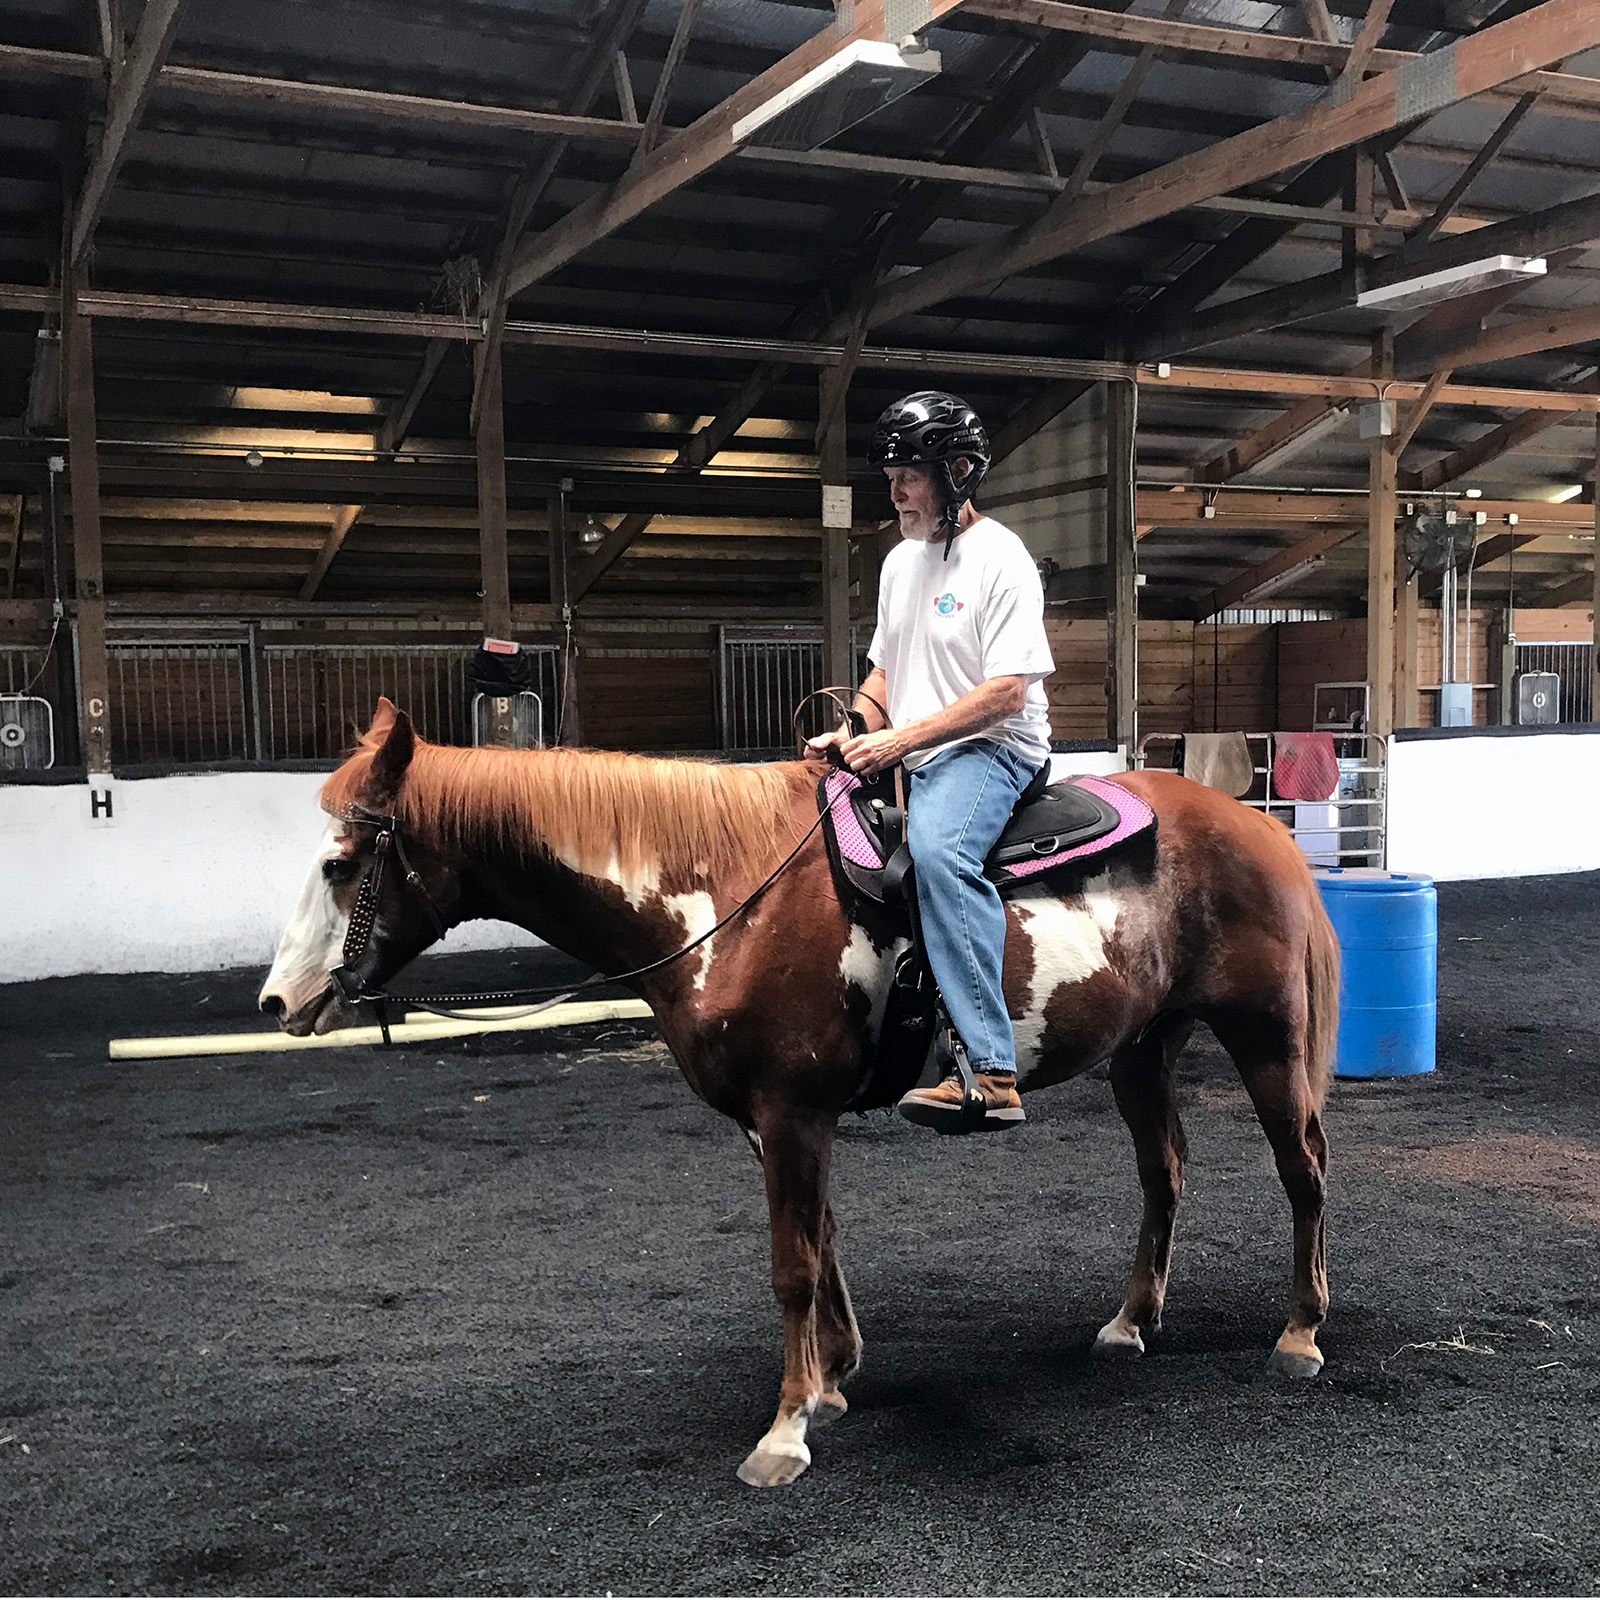 Equestrian Center at Beverly Farm Riding Lessons. Man on horseback in the indoor arena.